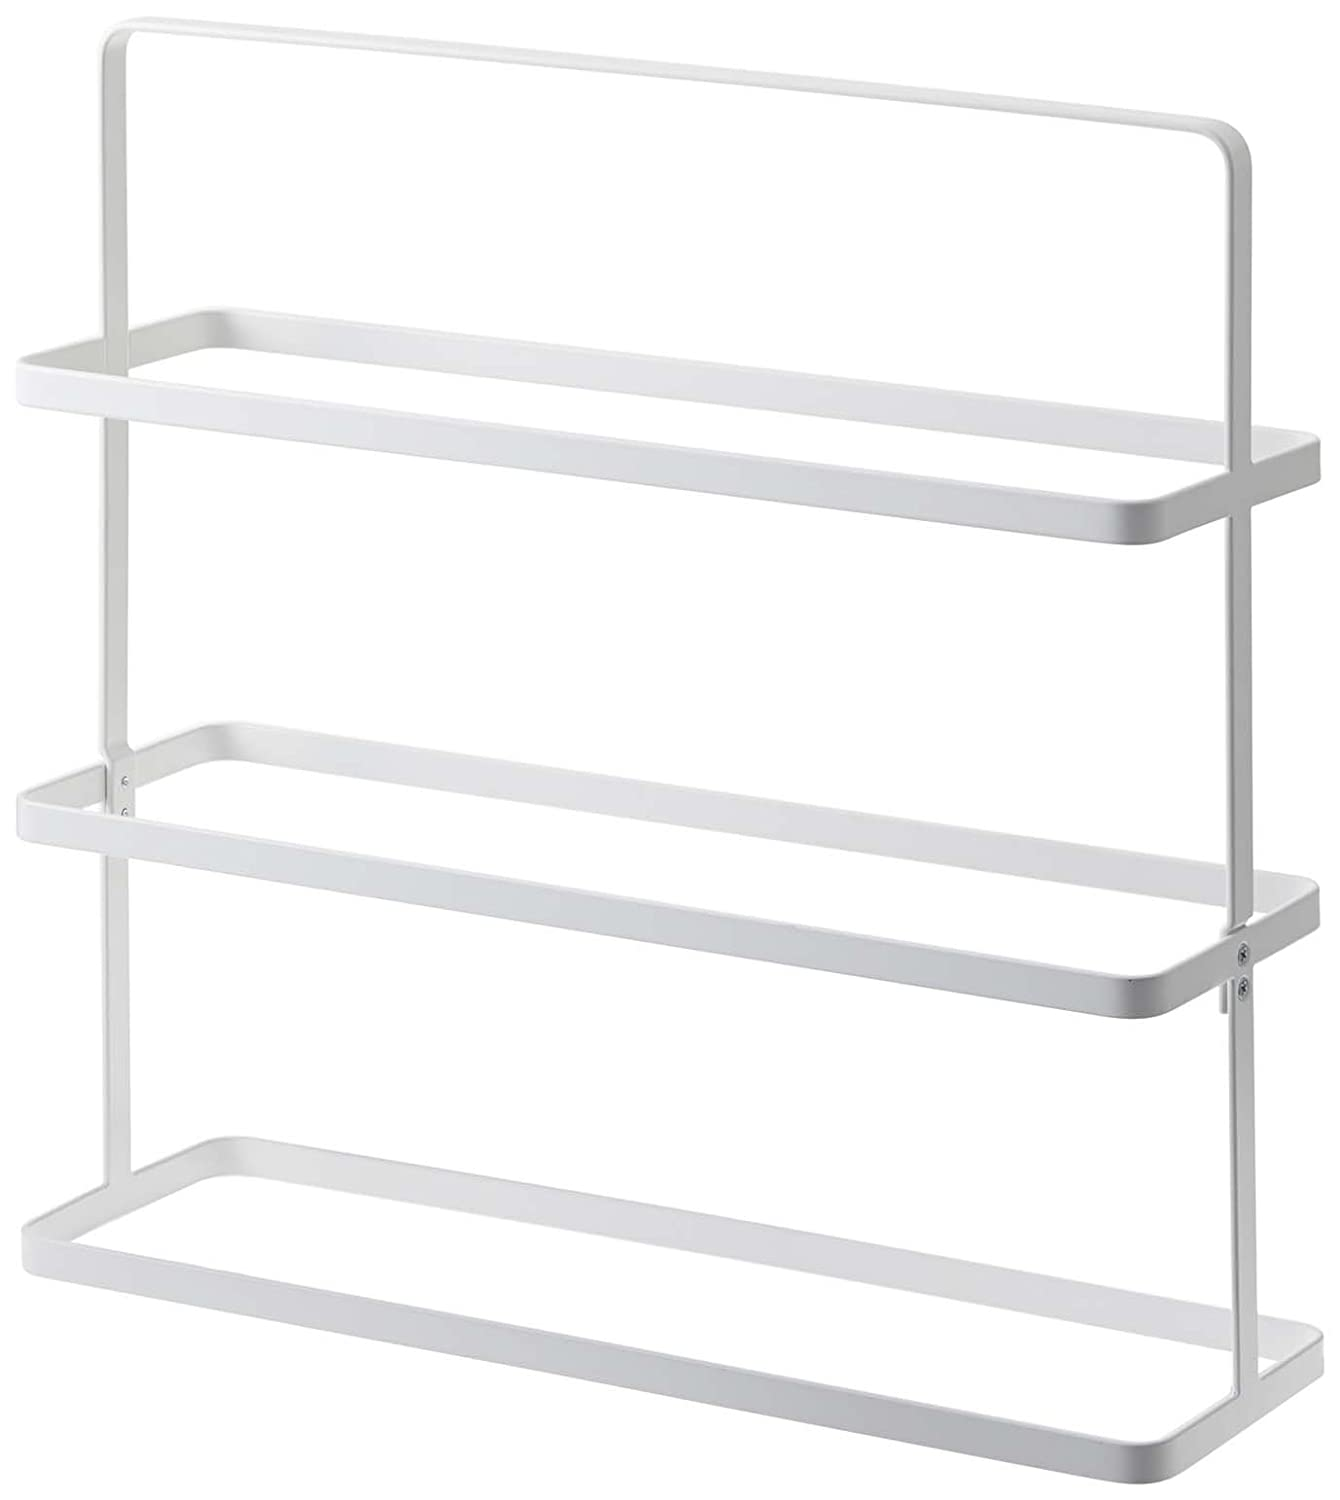 Uncategorized Tower Shoe Rack amazon com yamazaki home tower shoe rack wide white kitchen